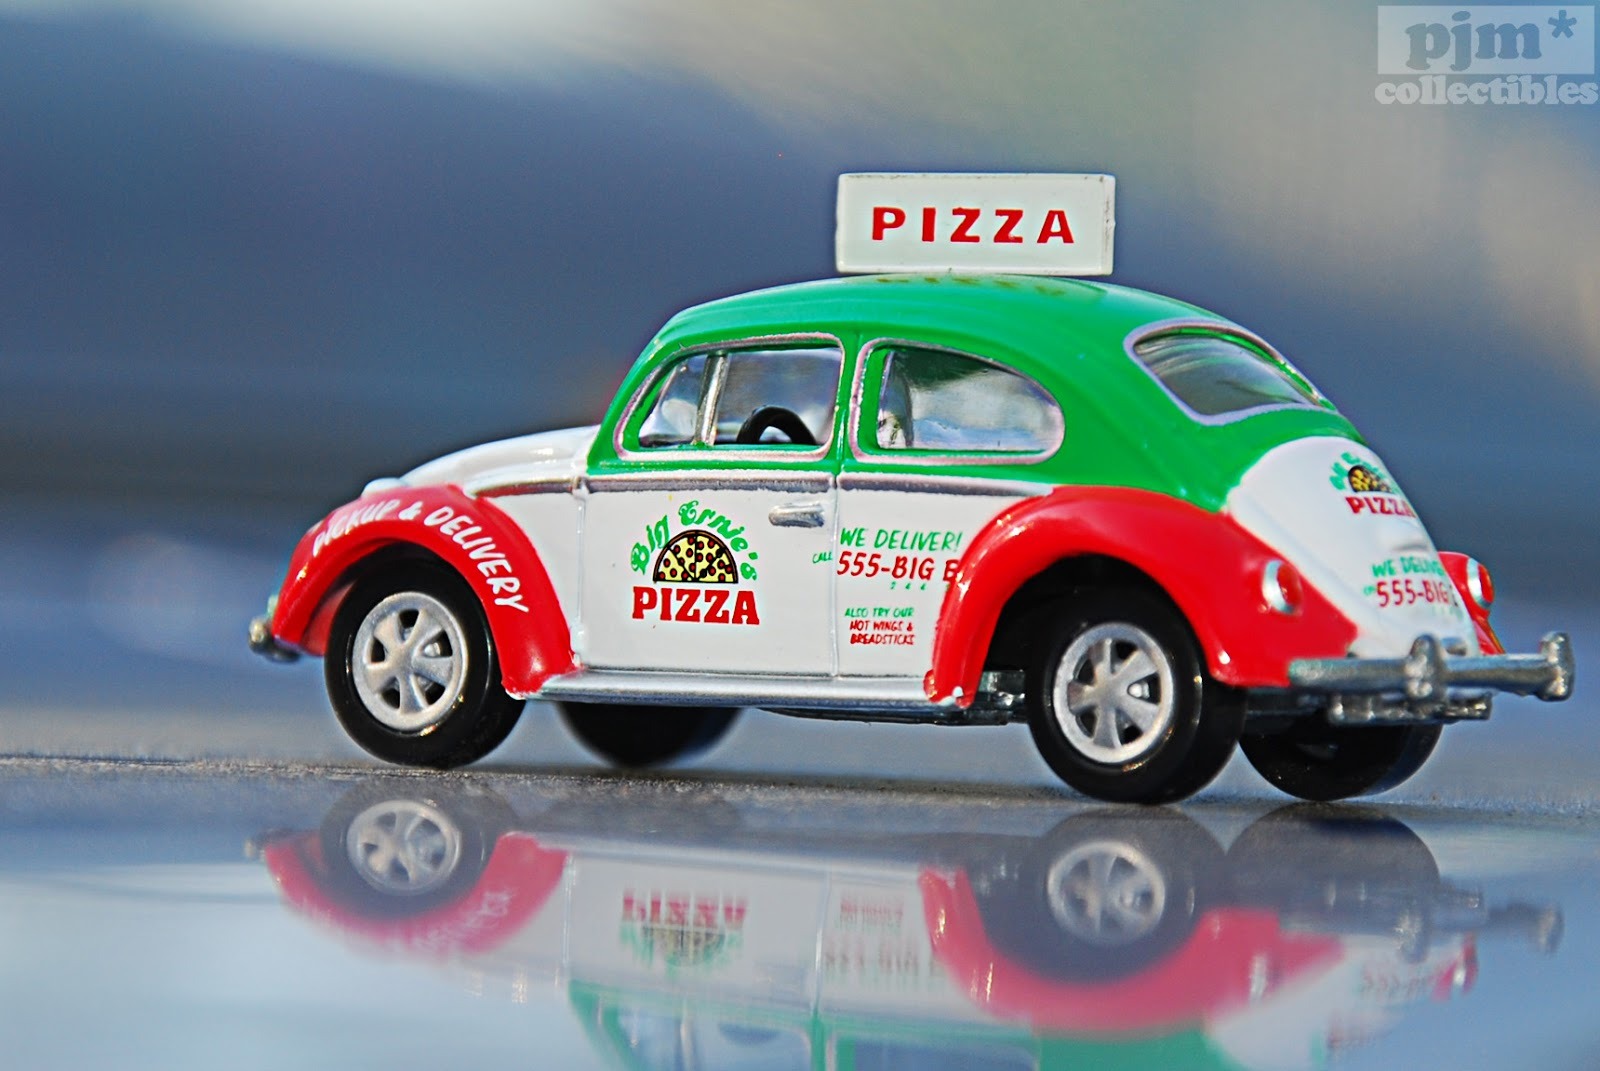 Toy Pizza Delivery Car 5